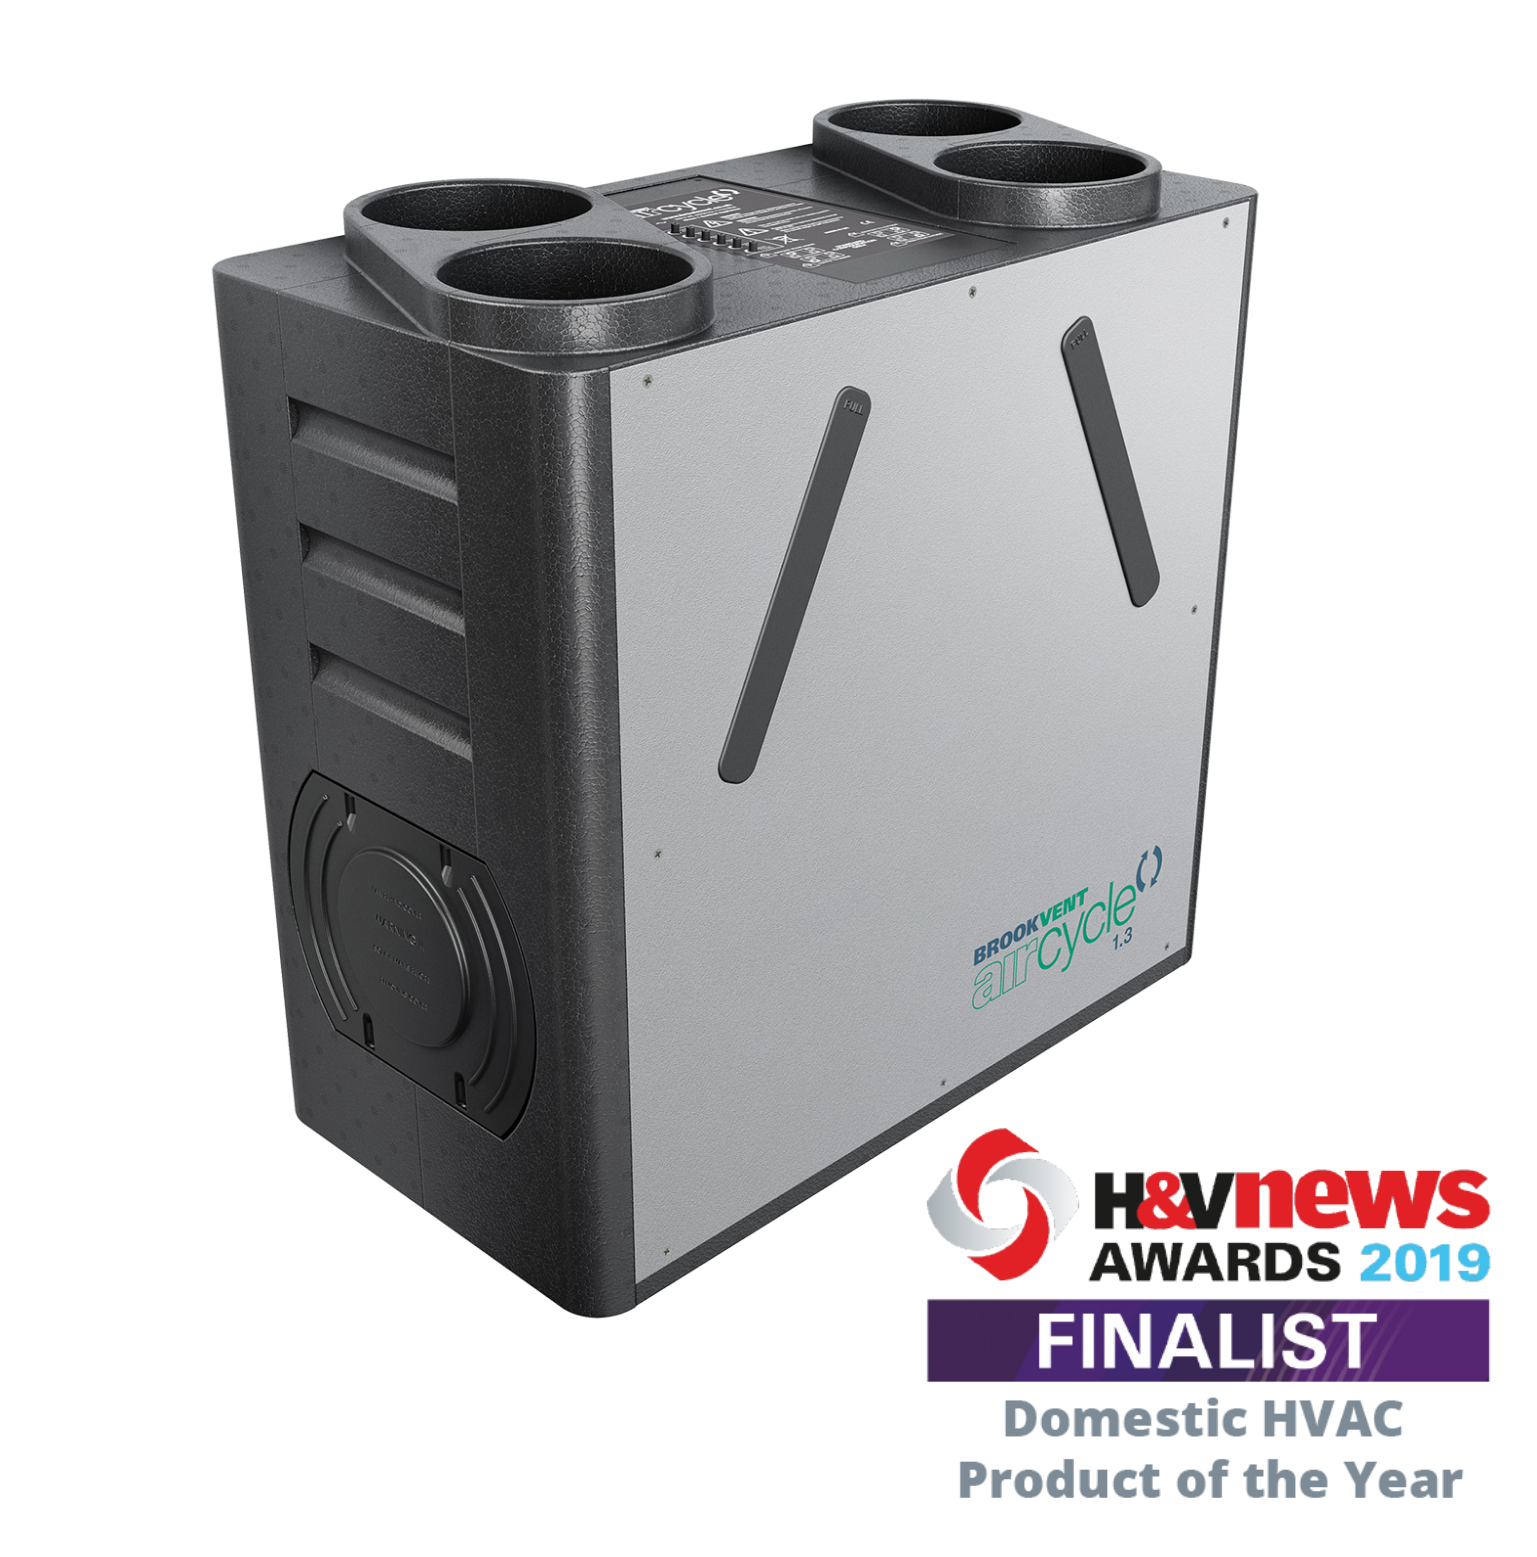 aircycle 1.3 domestic HVAC product of the year finalist